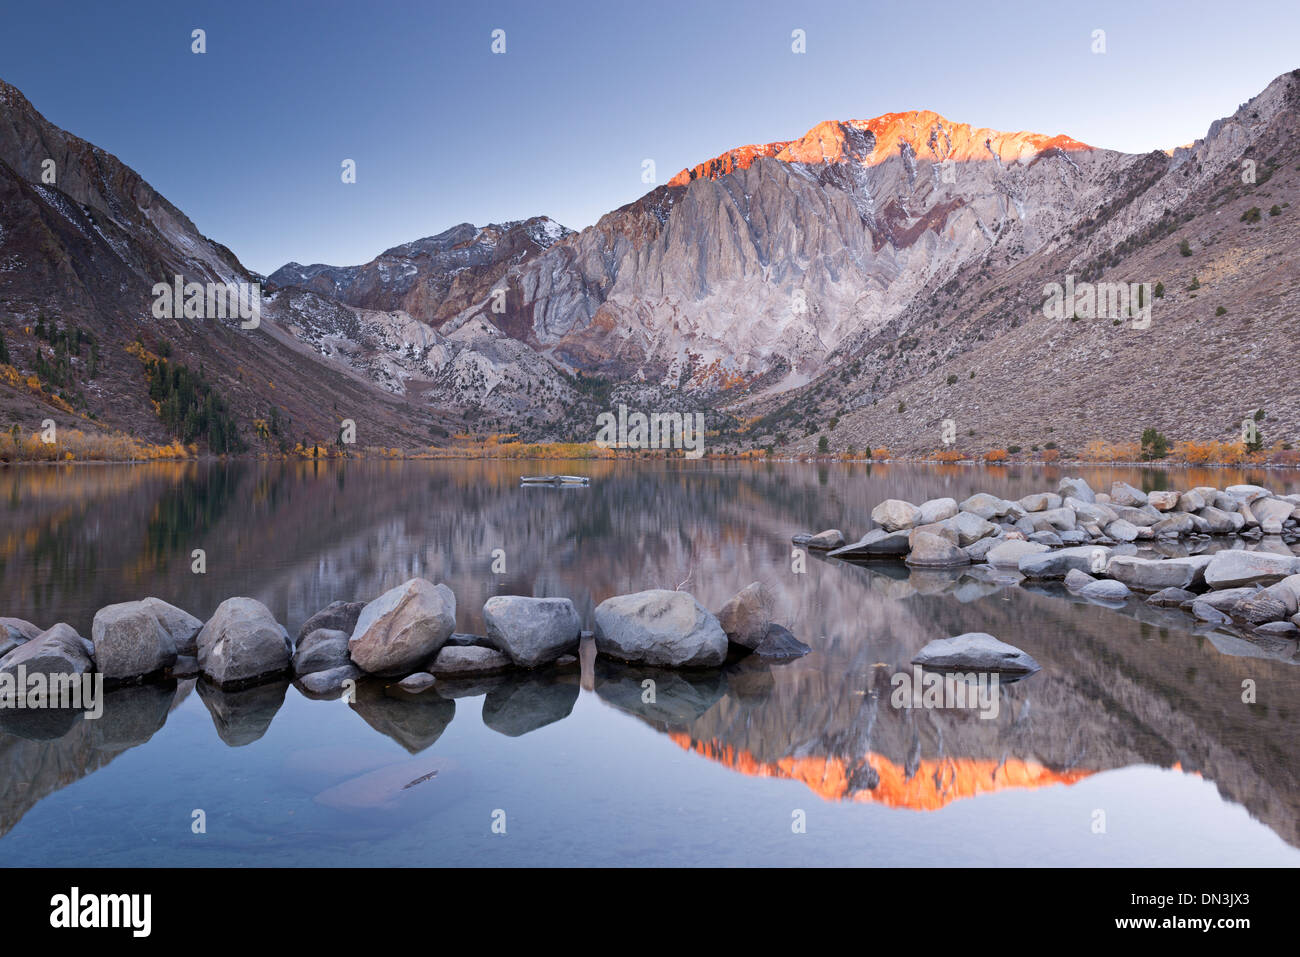 Sunrise at Convict Lake in the Eastern Sierra Mountains, California, USA. Autumn (October) 2013. Stock Photo